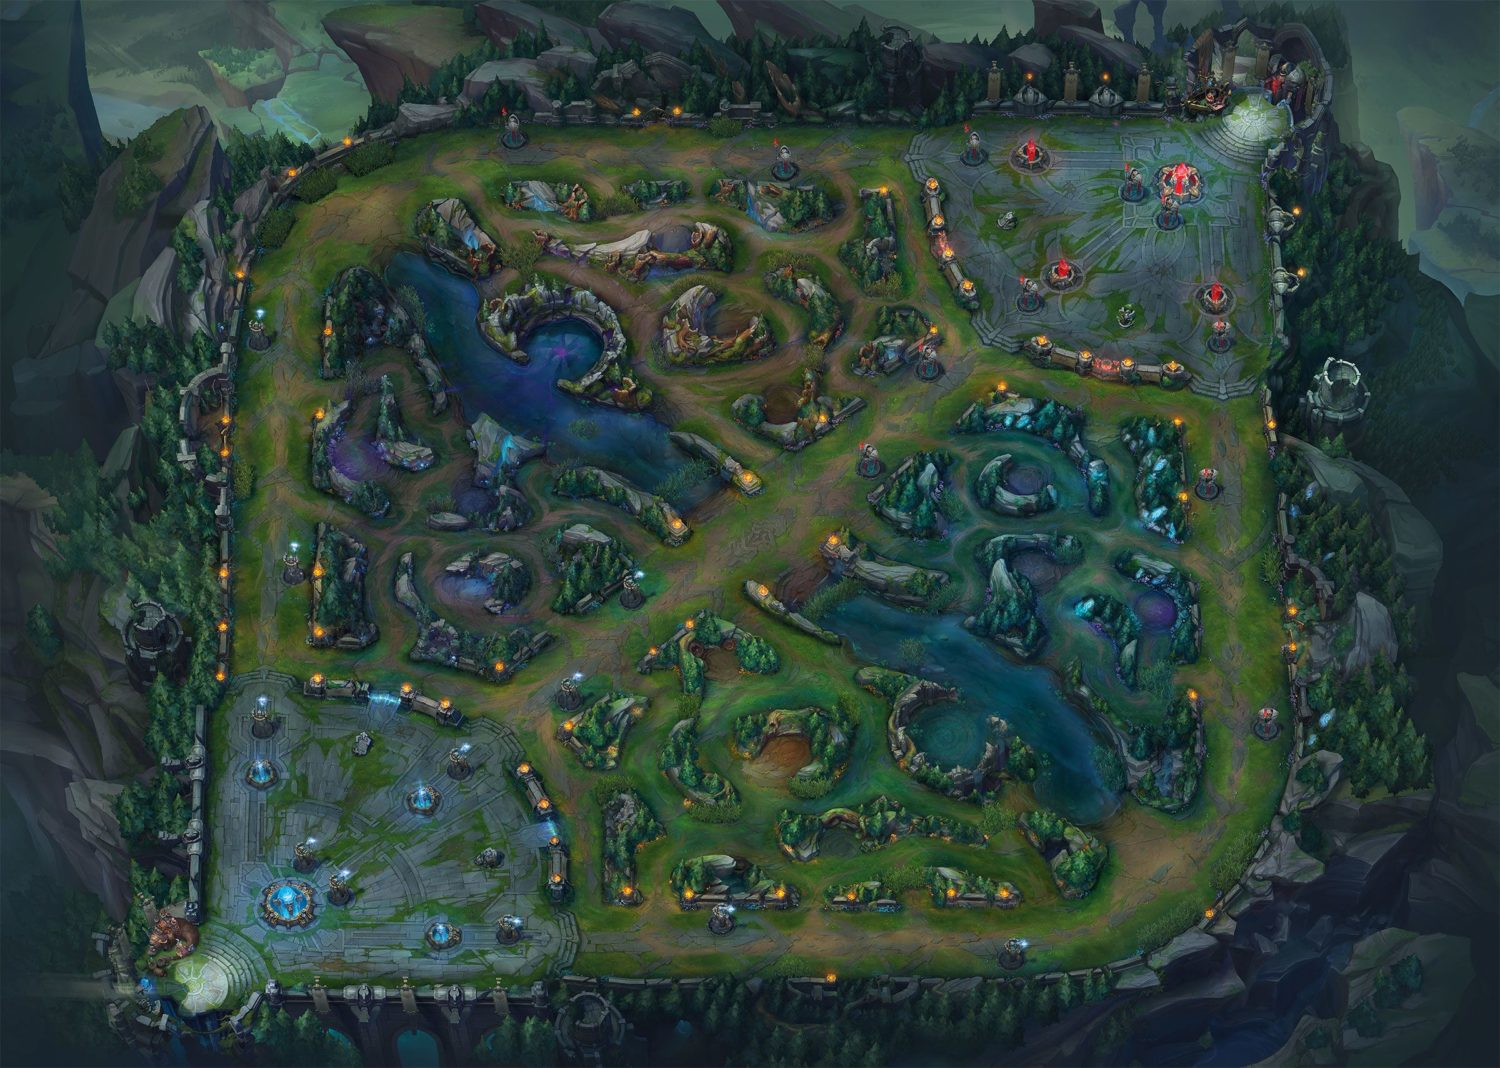 Mapa de League of Legends.